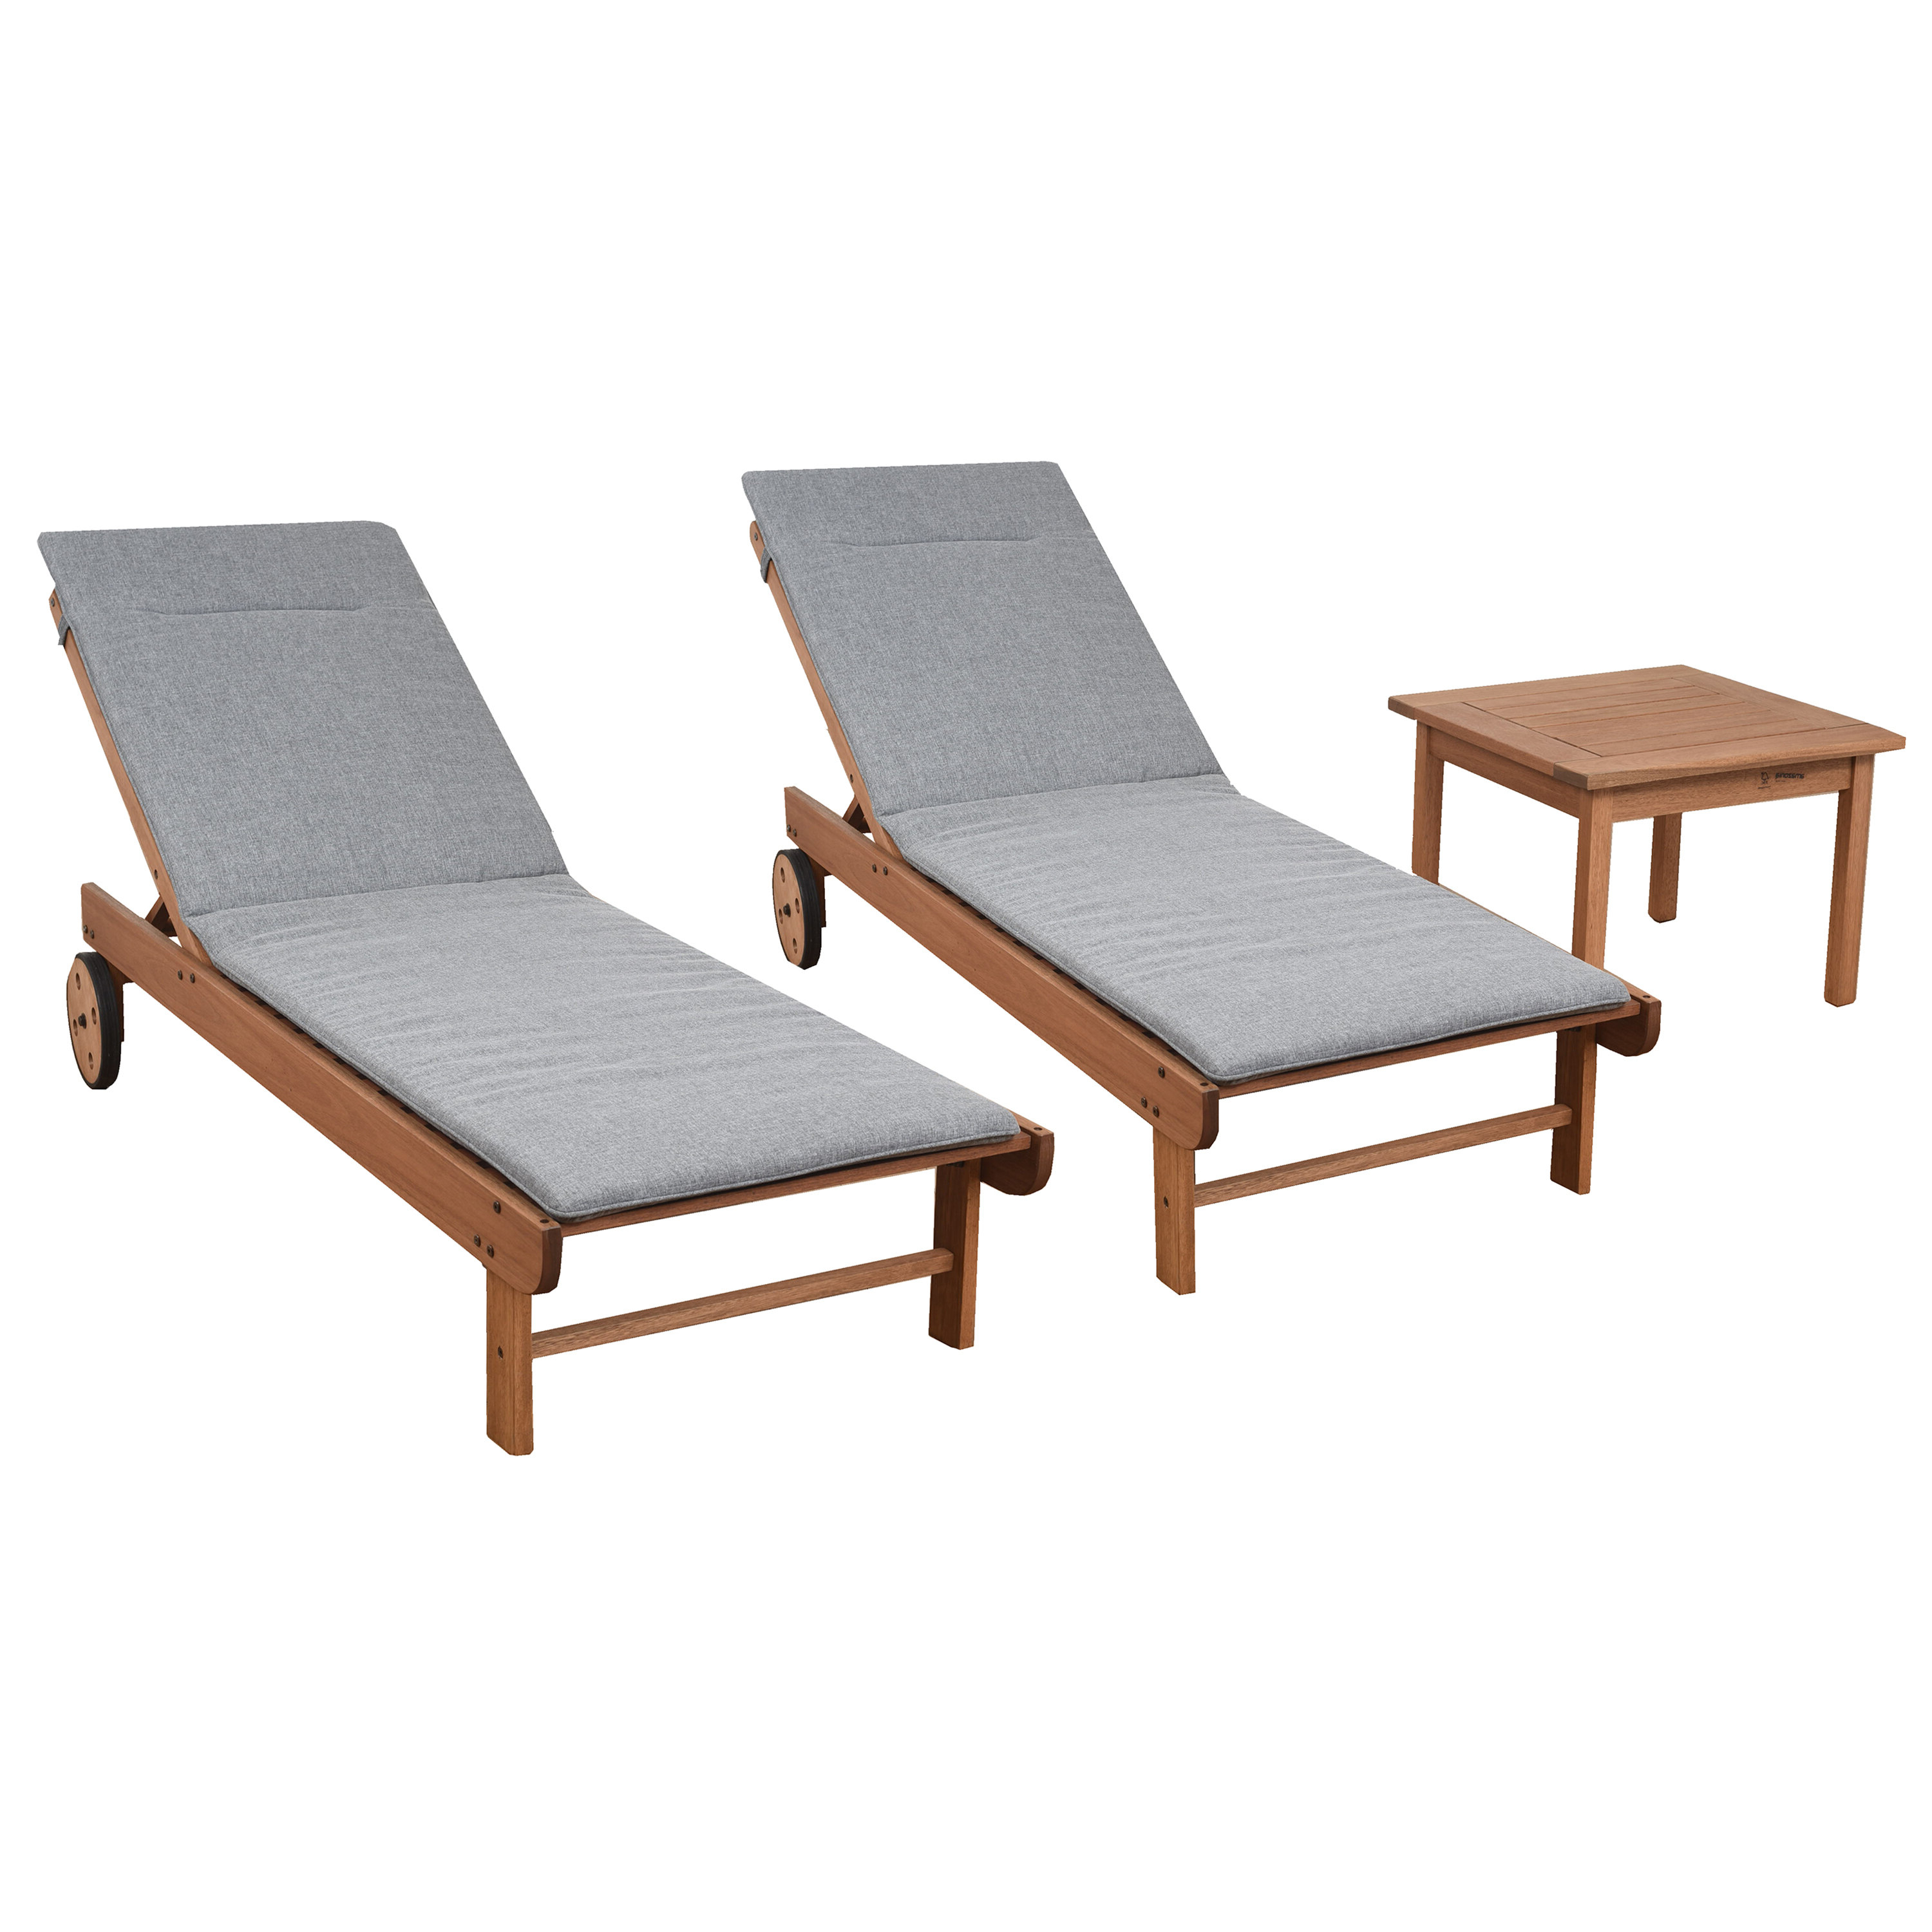 Brighton Gray Cushion Patio 3 Piece Single Reclining Chaise Lounge Set With Table Throughout Most Recently Released 3 Piece Patio Lounger Sets (Gallery 11 of 25)